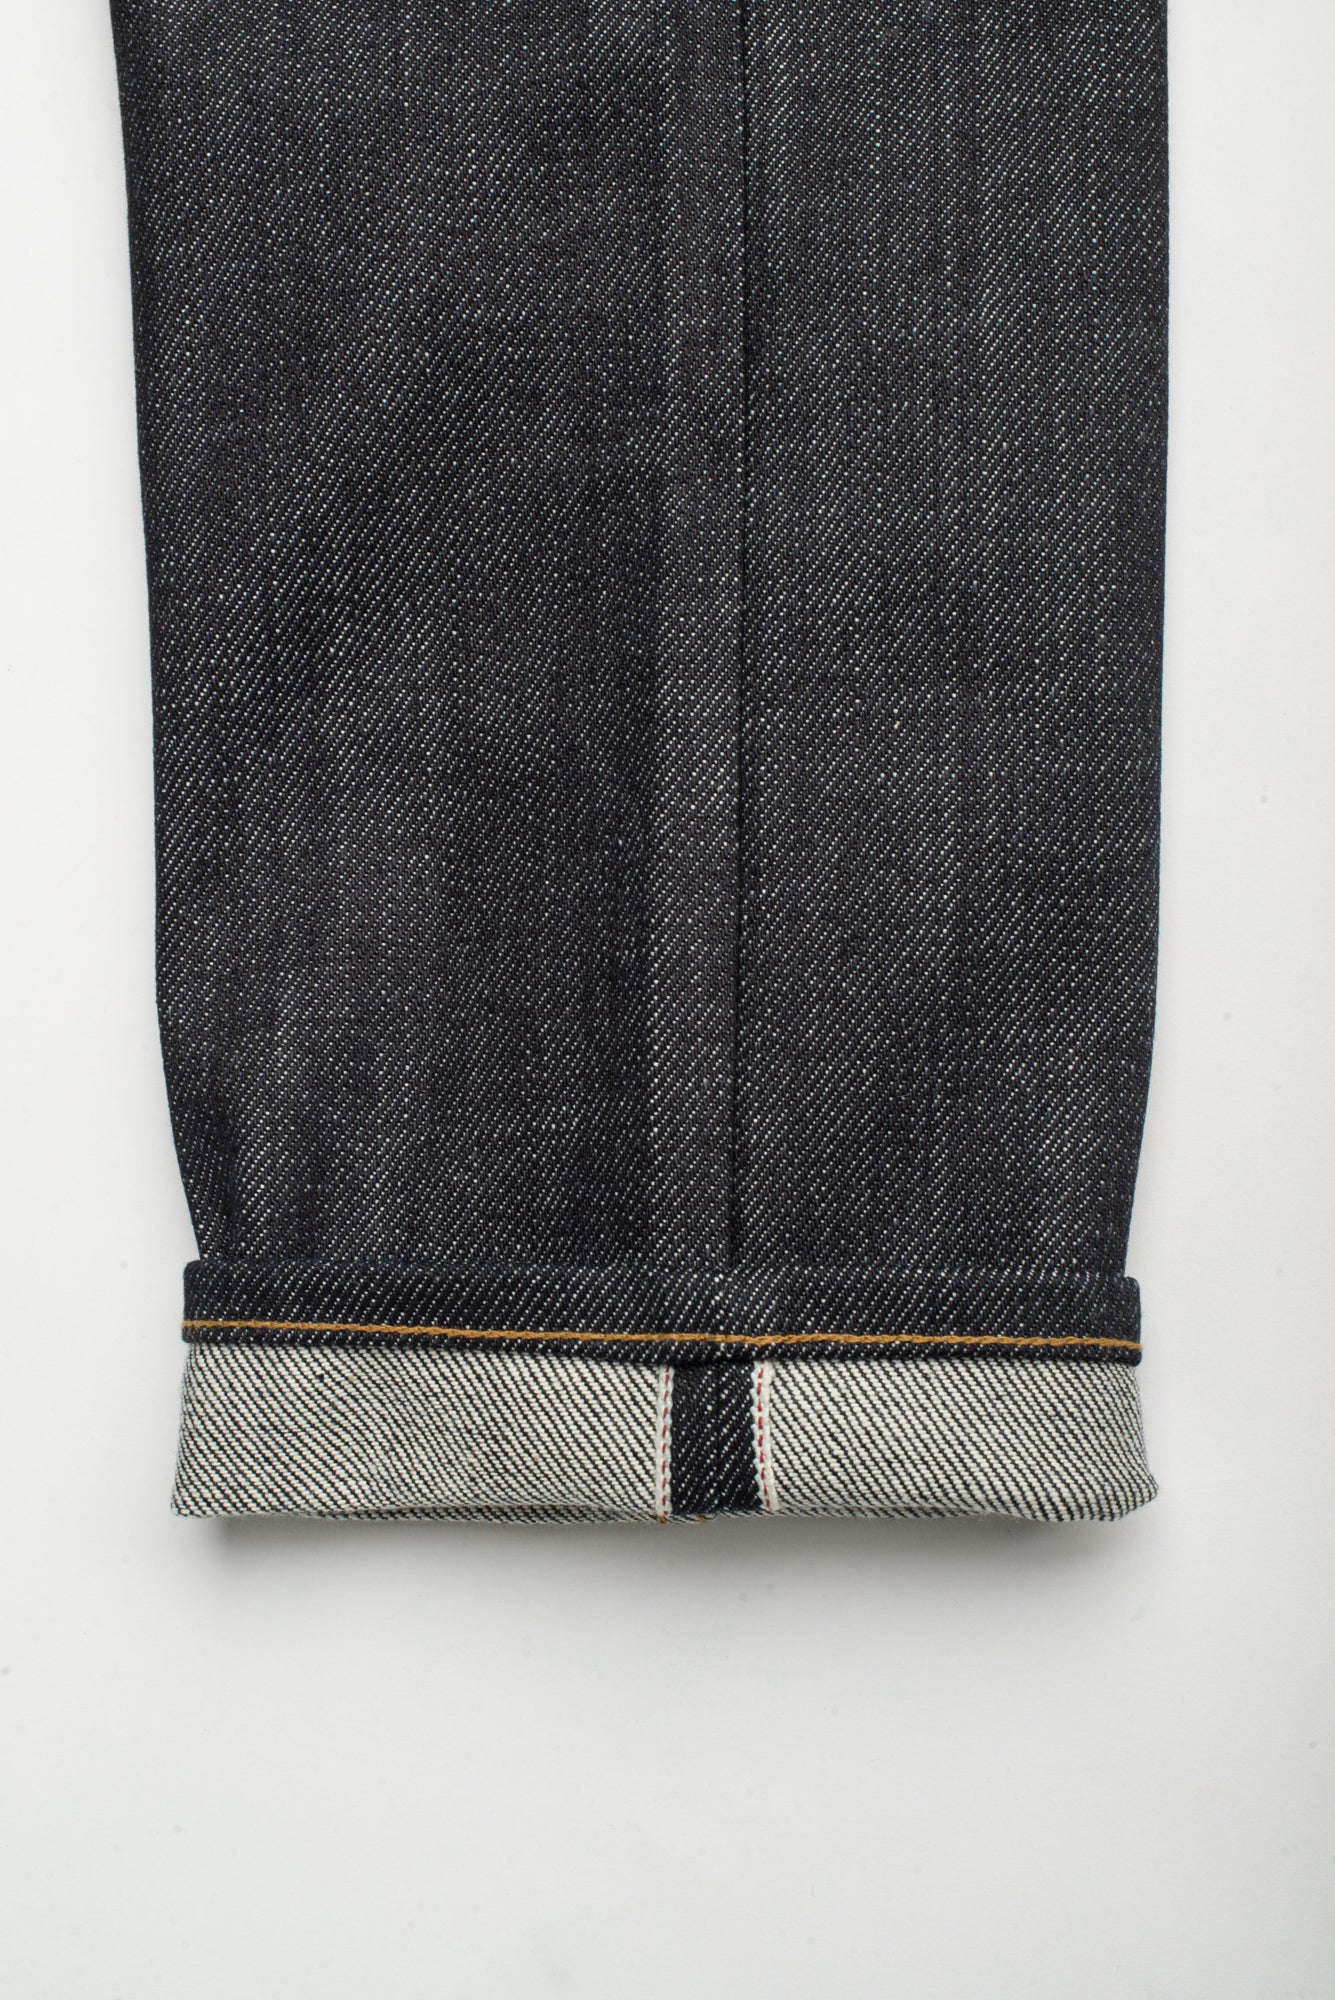 Portola Taper Raw 20 oz Japanese Denim Selvage Detail